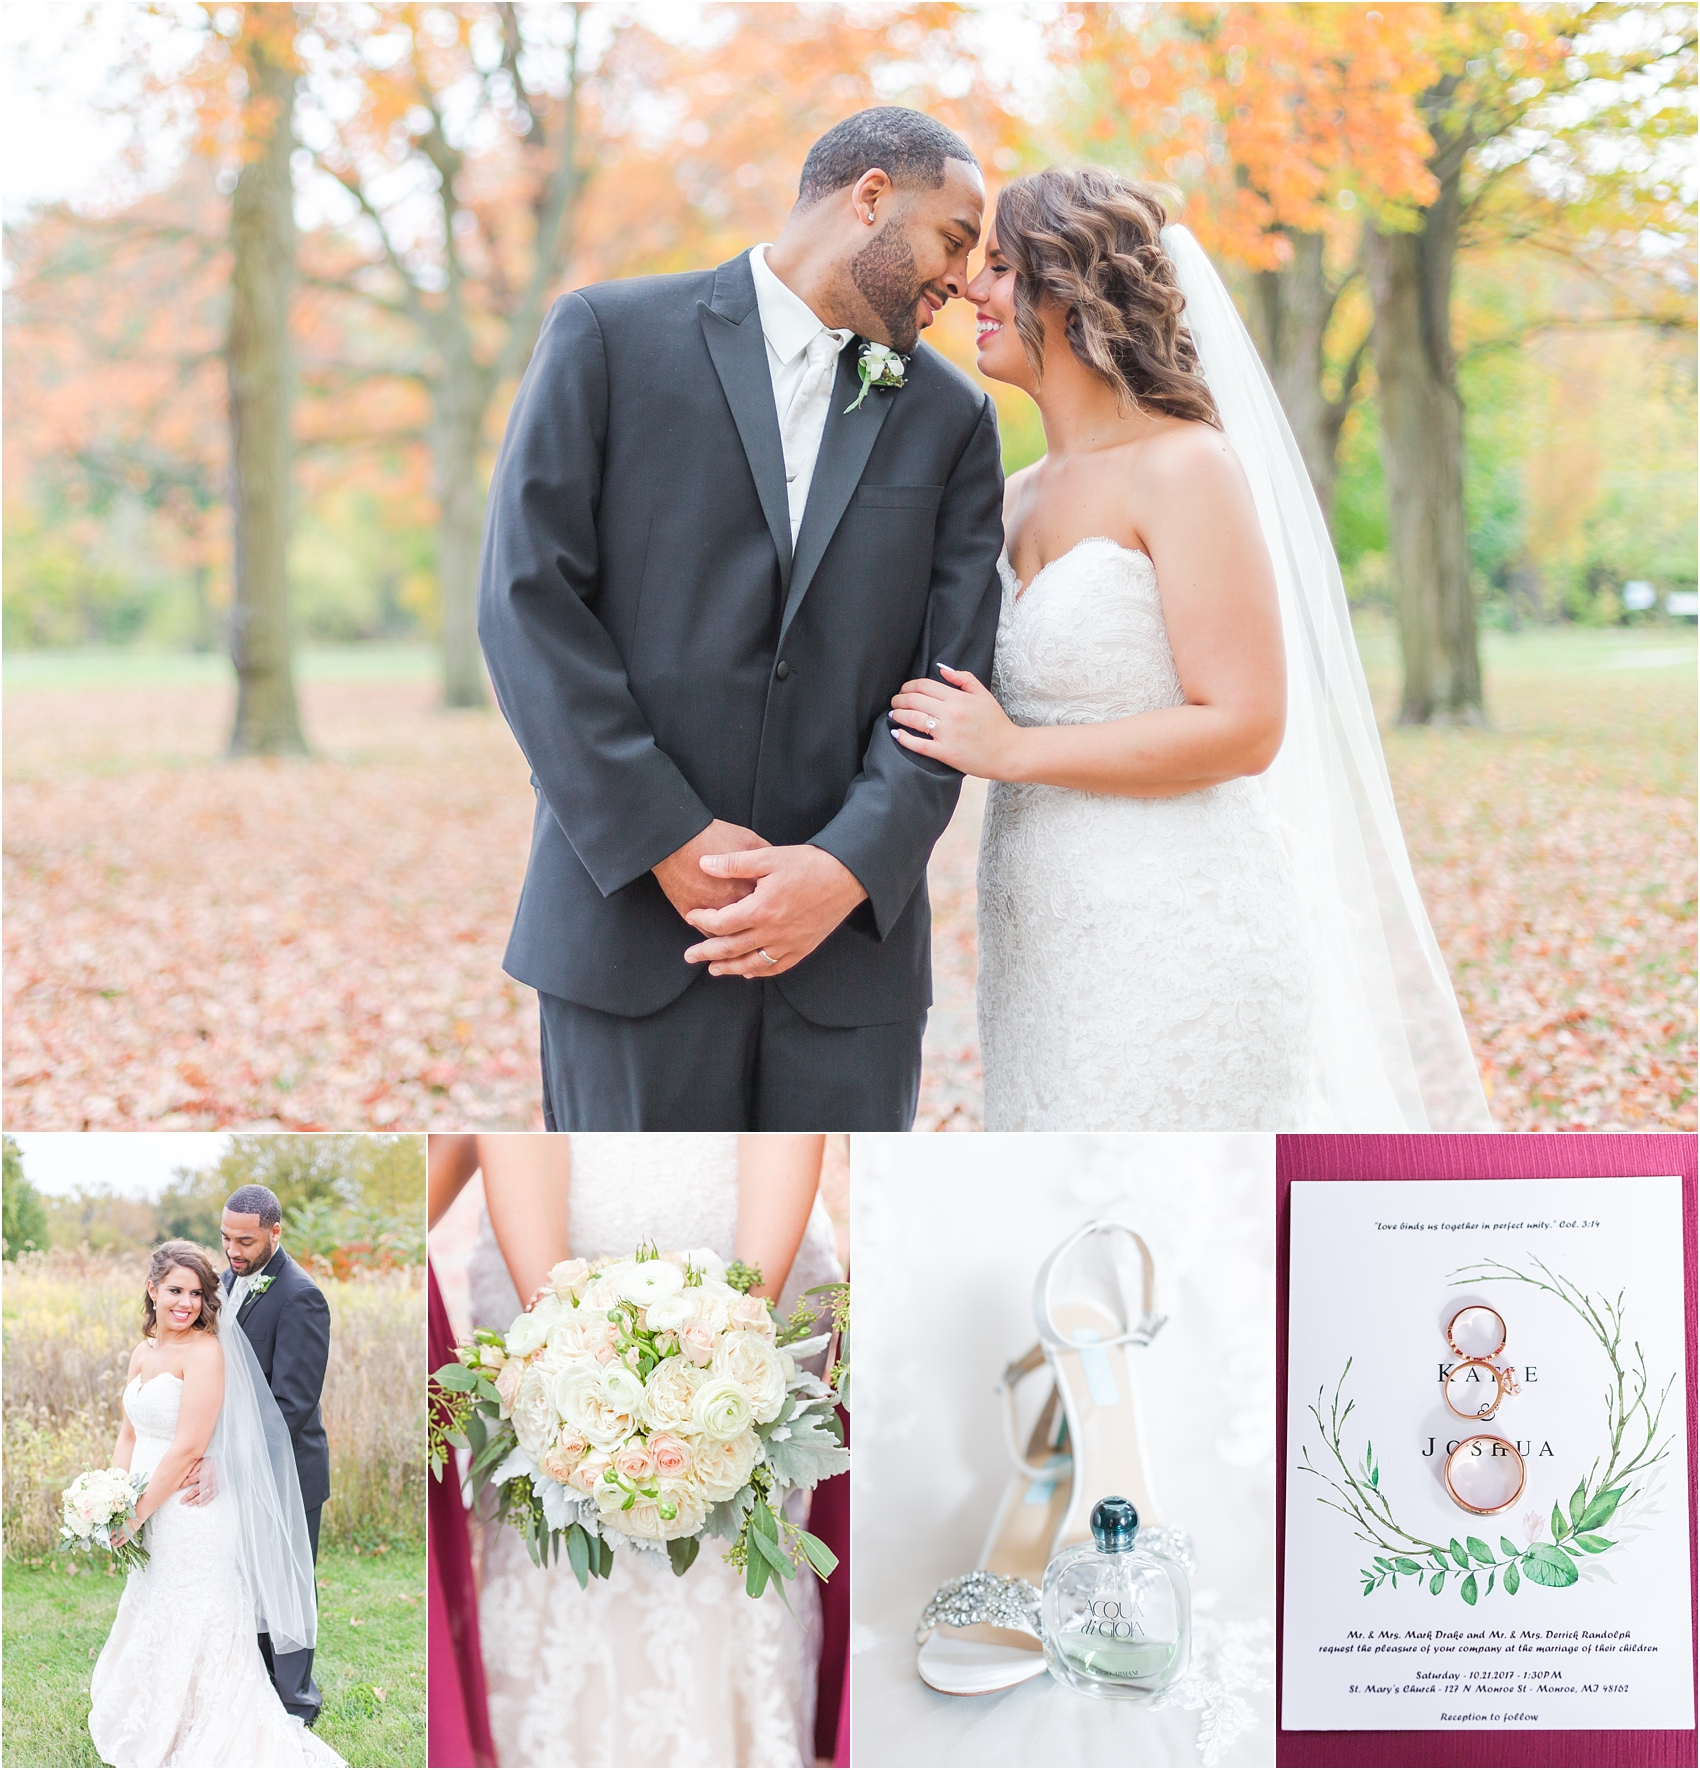 elegant-and-romantic-fall-wedding-photos-at-st-marys-catholic-church-in-monroe-michigan-by-courtney-carolyn-photography_0079.jpg